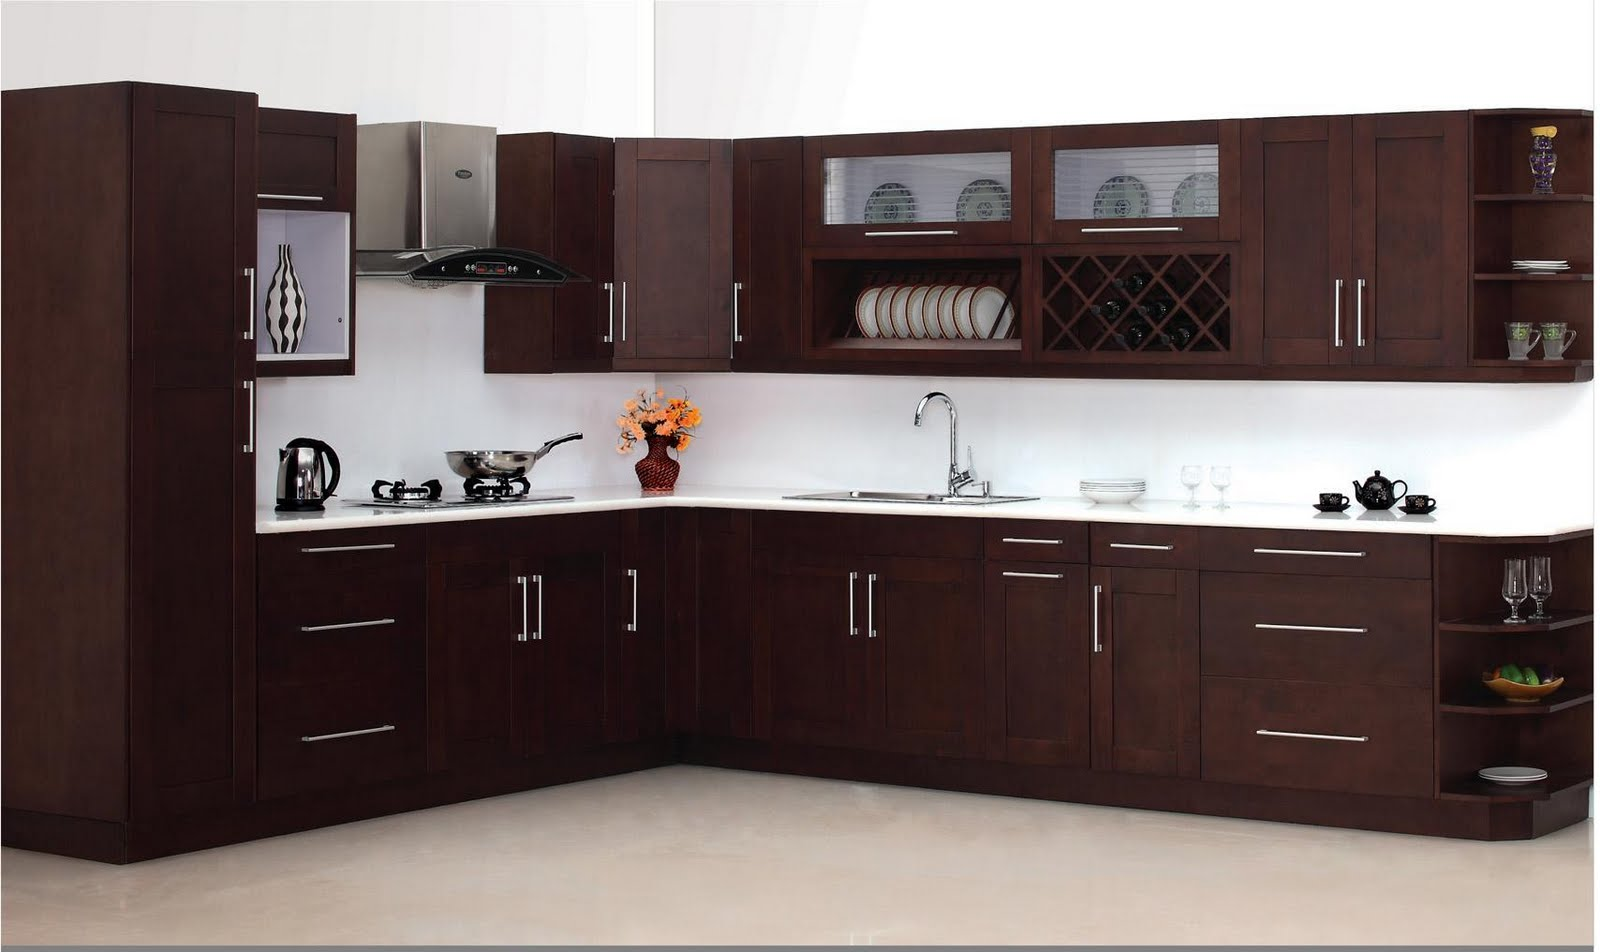 Espresso Maple Shaker Kitchen Cabinets